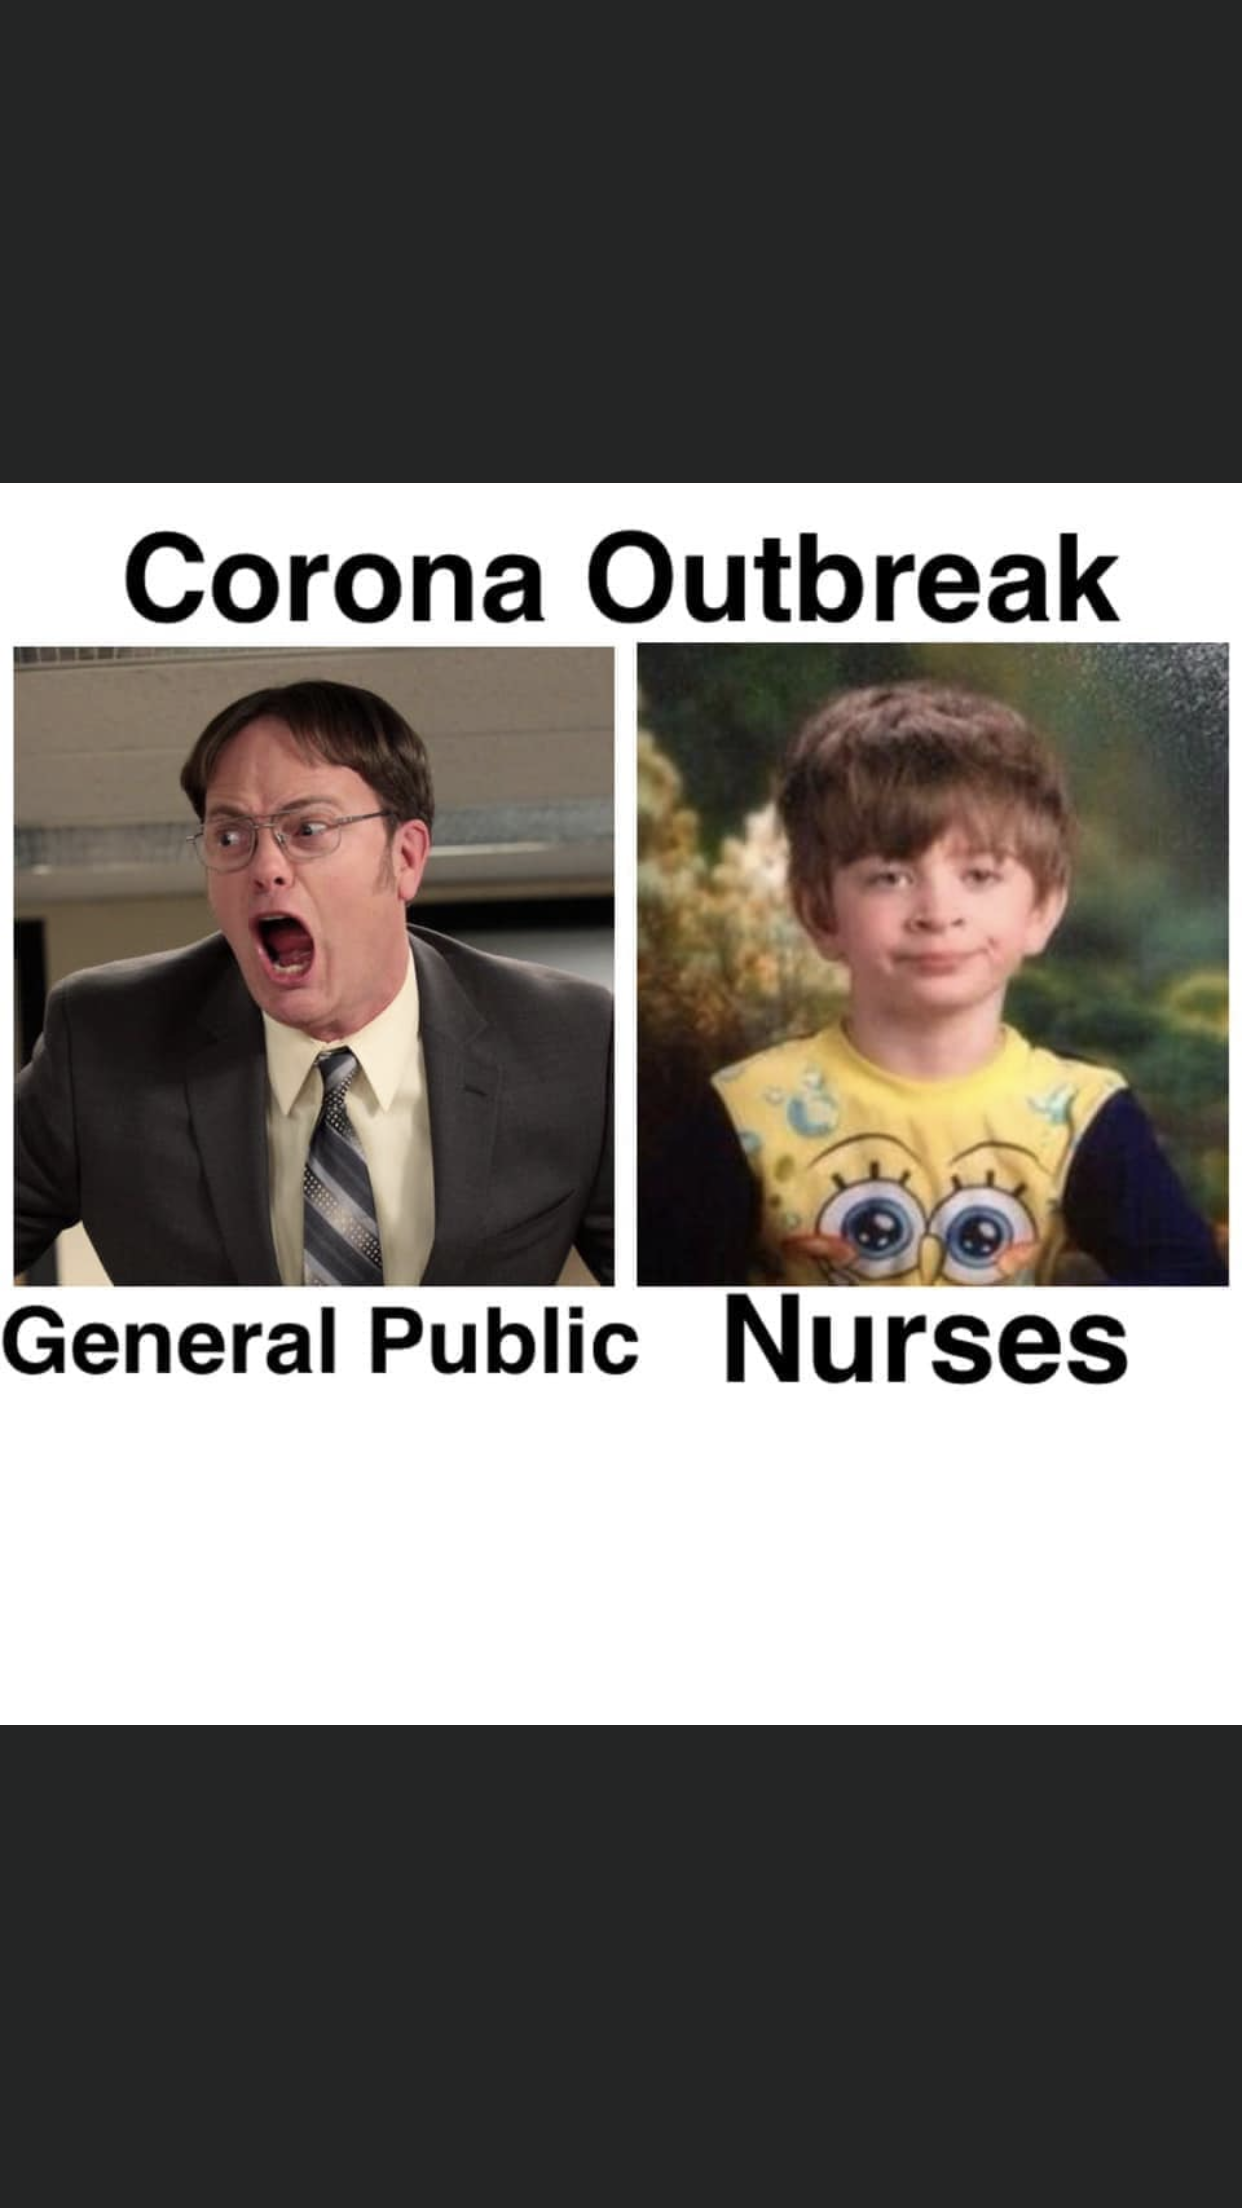 A Page For Nursing Memes Nursing Student Memes And Funny Nursing Pictures In General Post Your Funniest Cra Nurse Memes Humor Funny Nurse Quotes Nurse Jokes